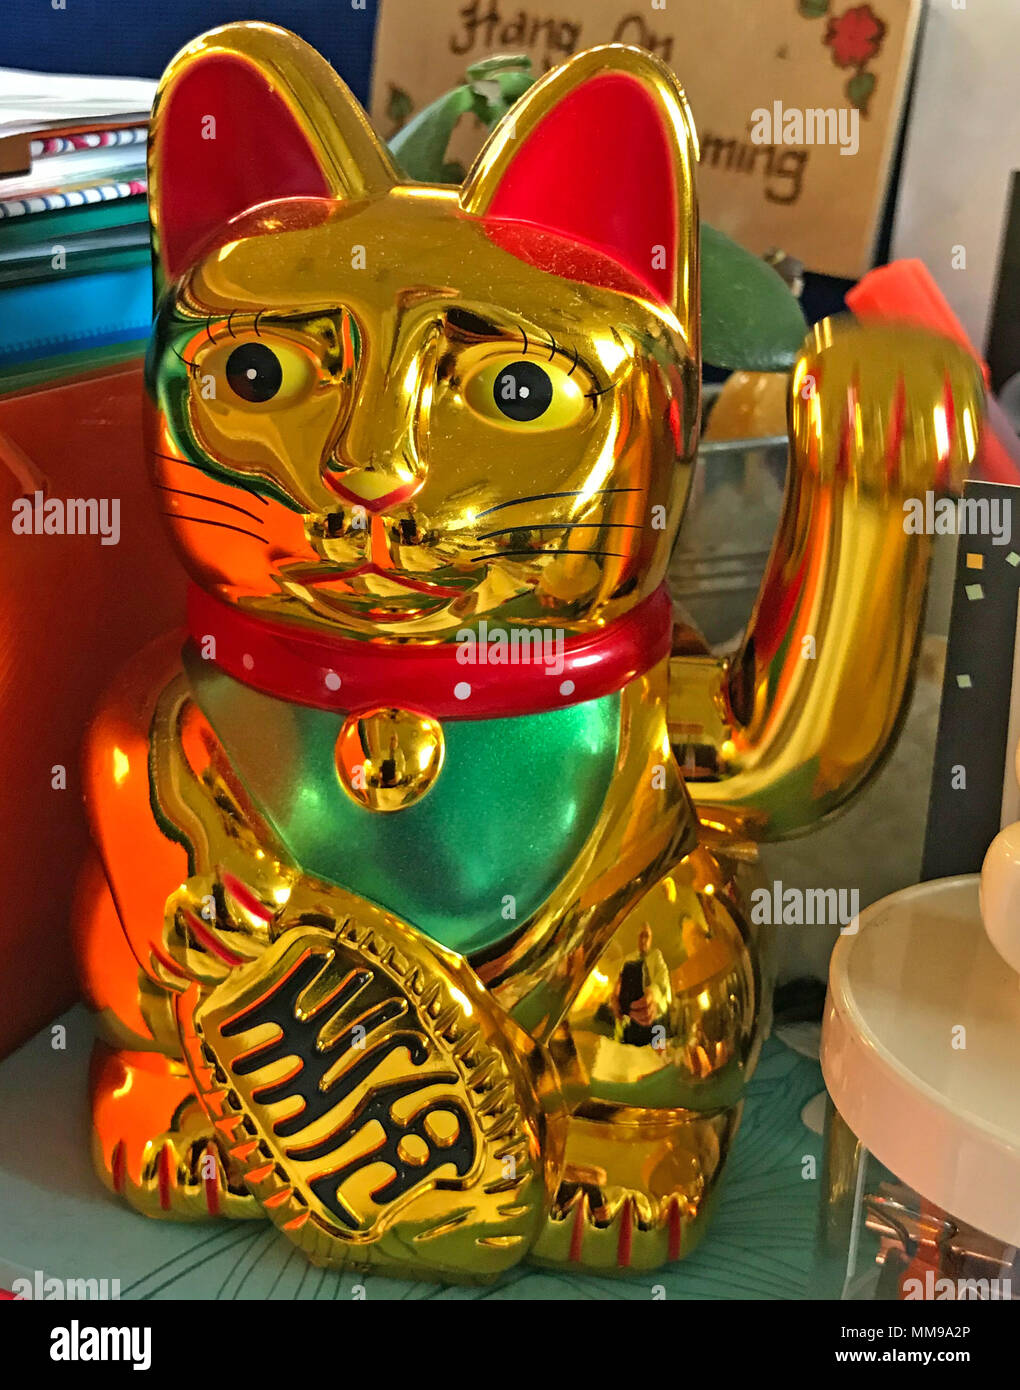 GoTonysmith,@HotpixUK,beckoning,with,slow,moving,doll,Chinese lucky cat,Chinese,lucky cat,icon,superstition,sculptures,electric,battery operated,battery,operated,statue,statues,wave,waving,reflective,left,left paw,paw,stray cat,stray,cat,folklore,chinese folklore,talisman,good fortune,good luck,Chinatown,Chinese culture,Japanese lucky cat